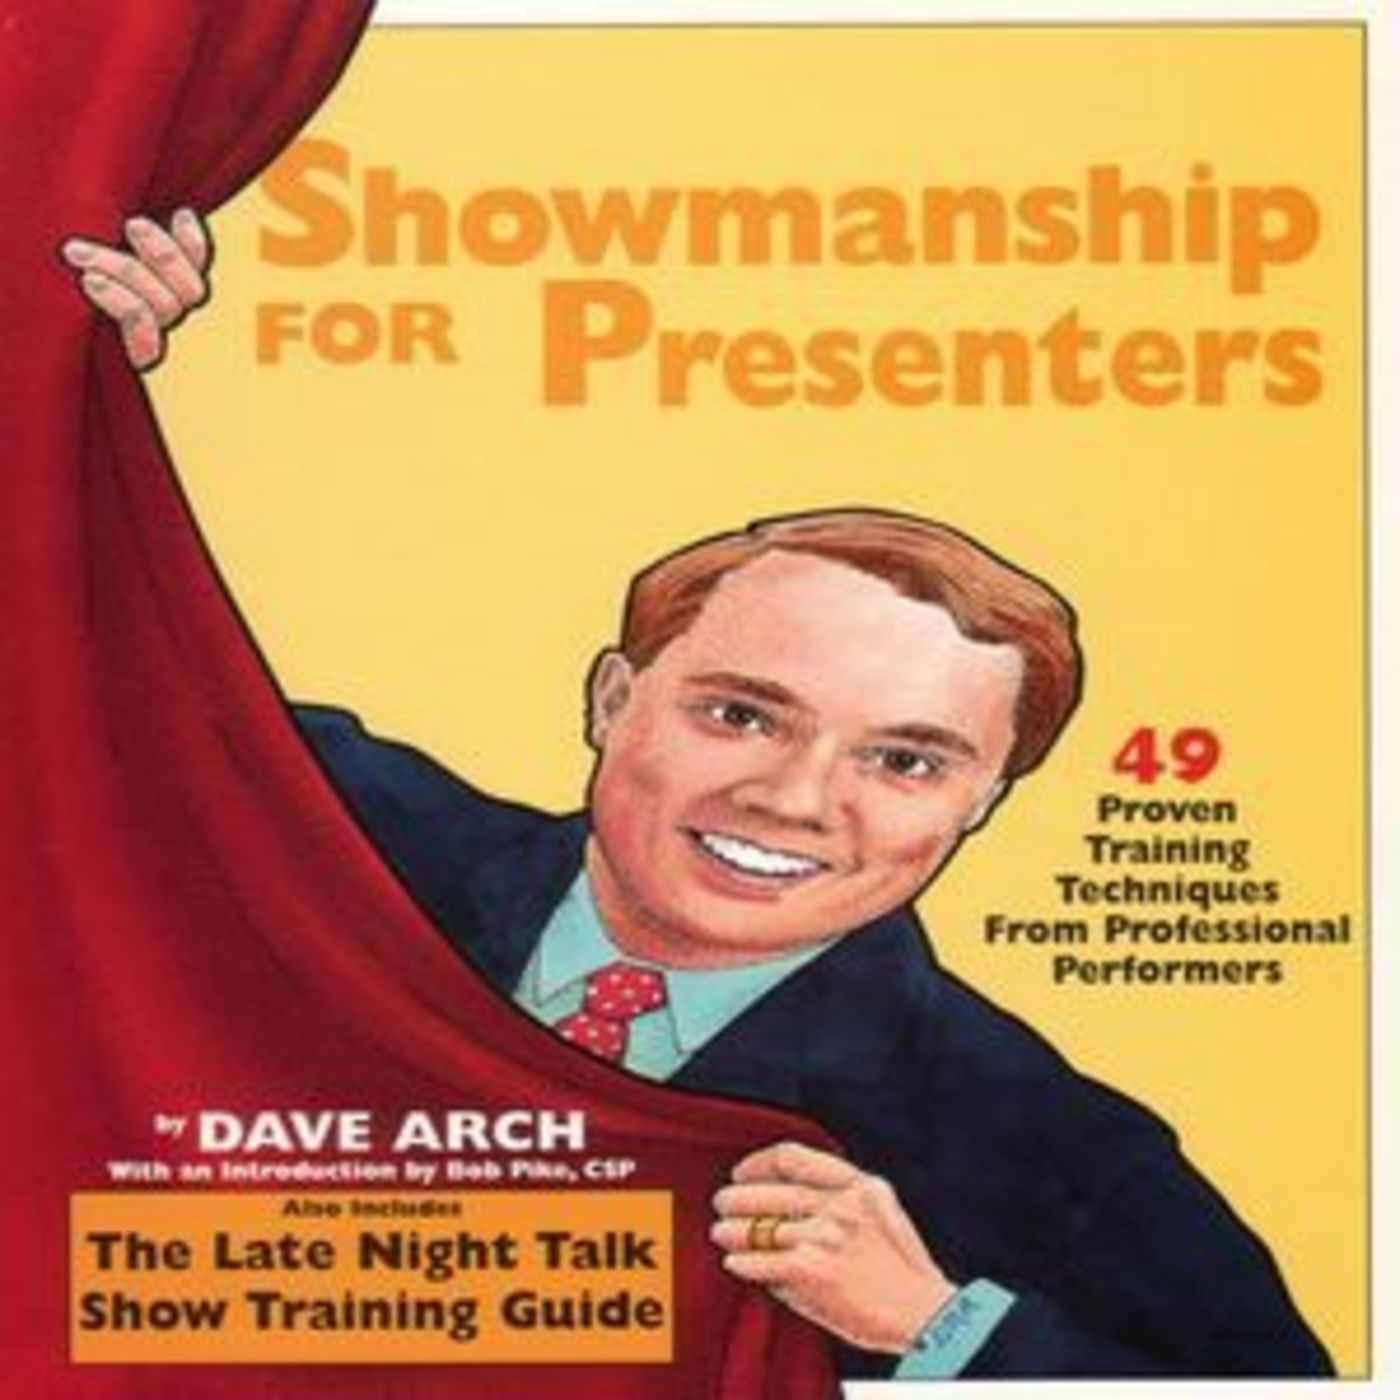 Showmanship For Presenters with Dave Arch